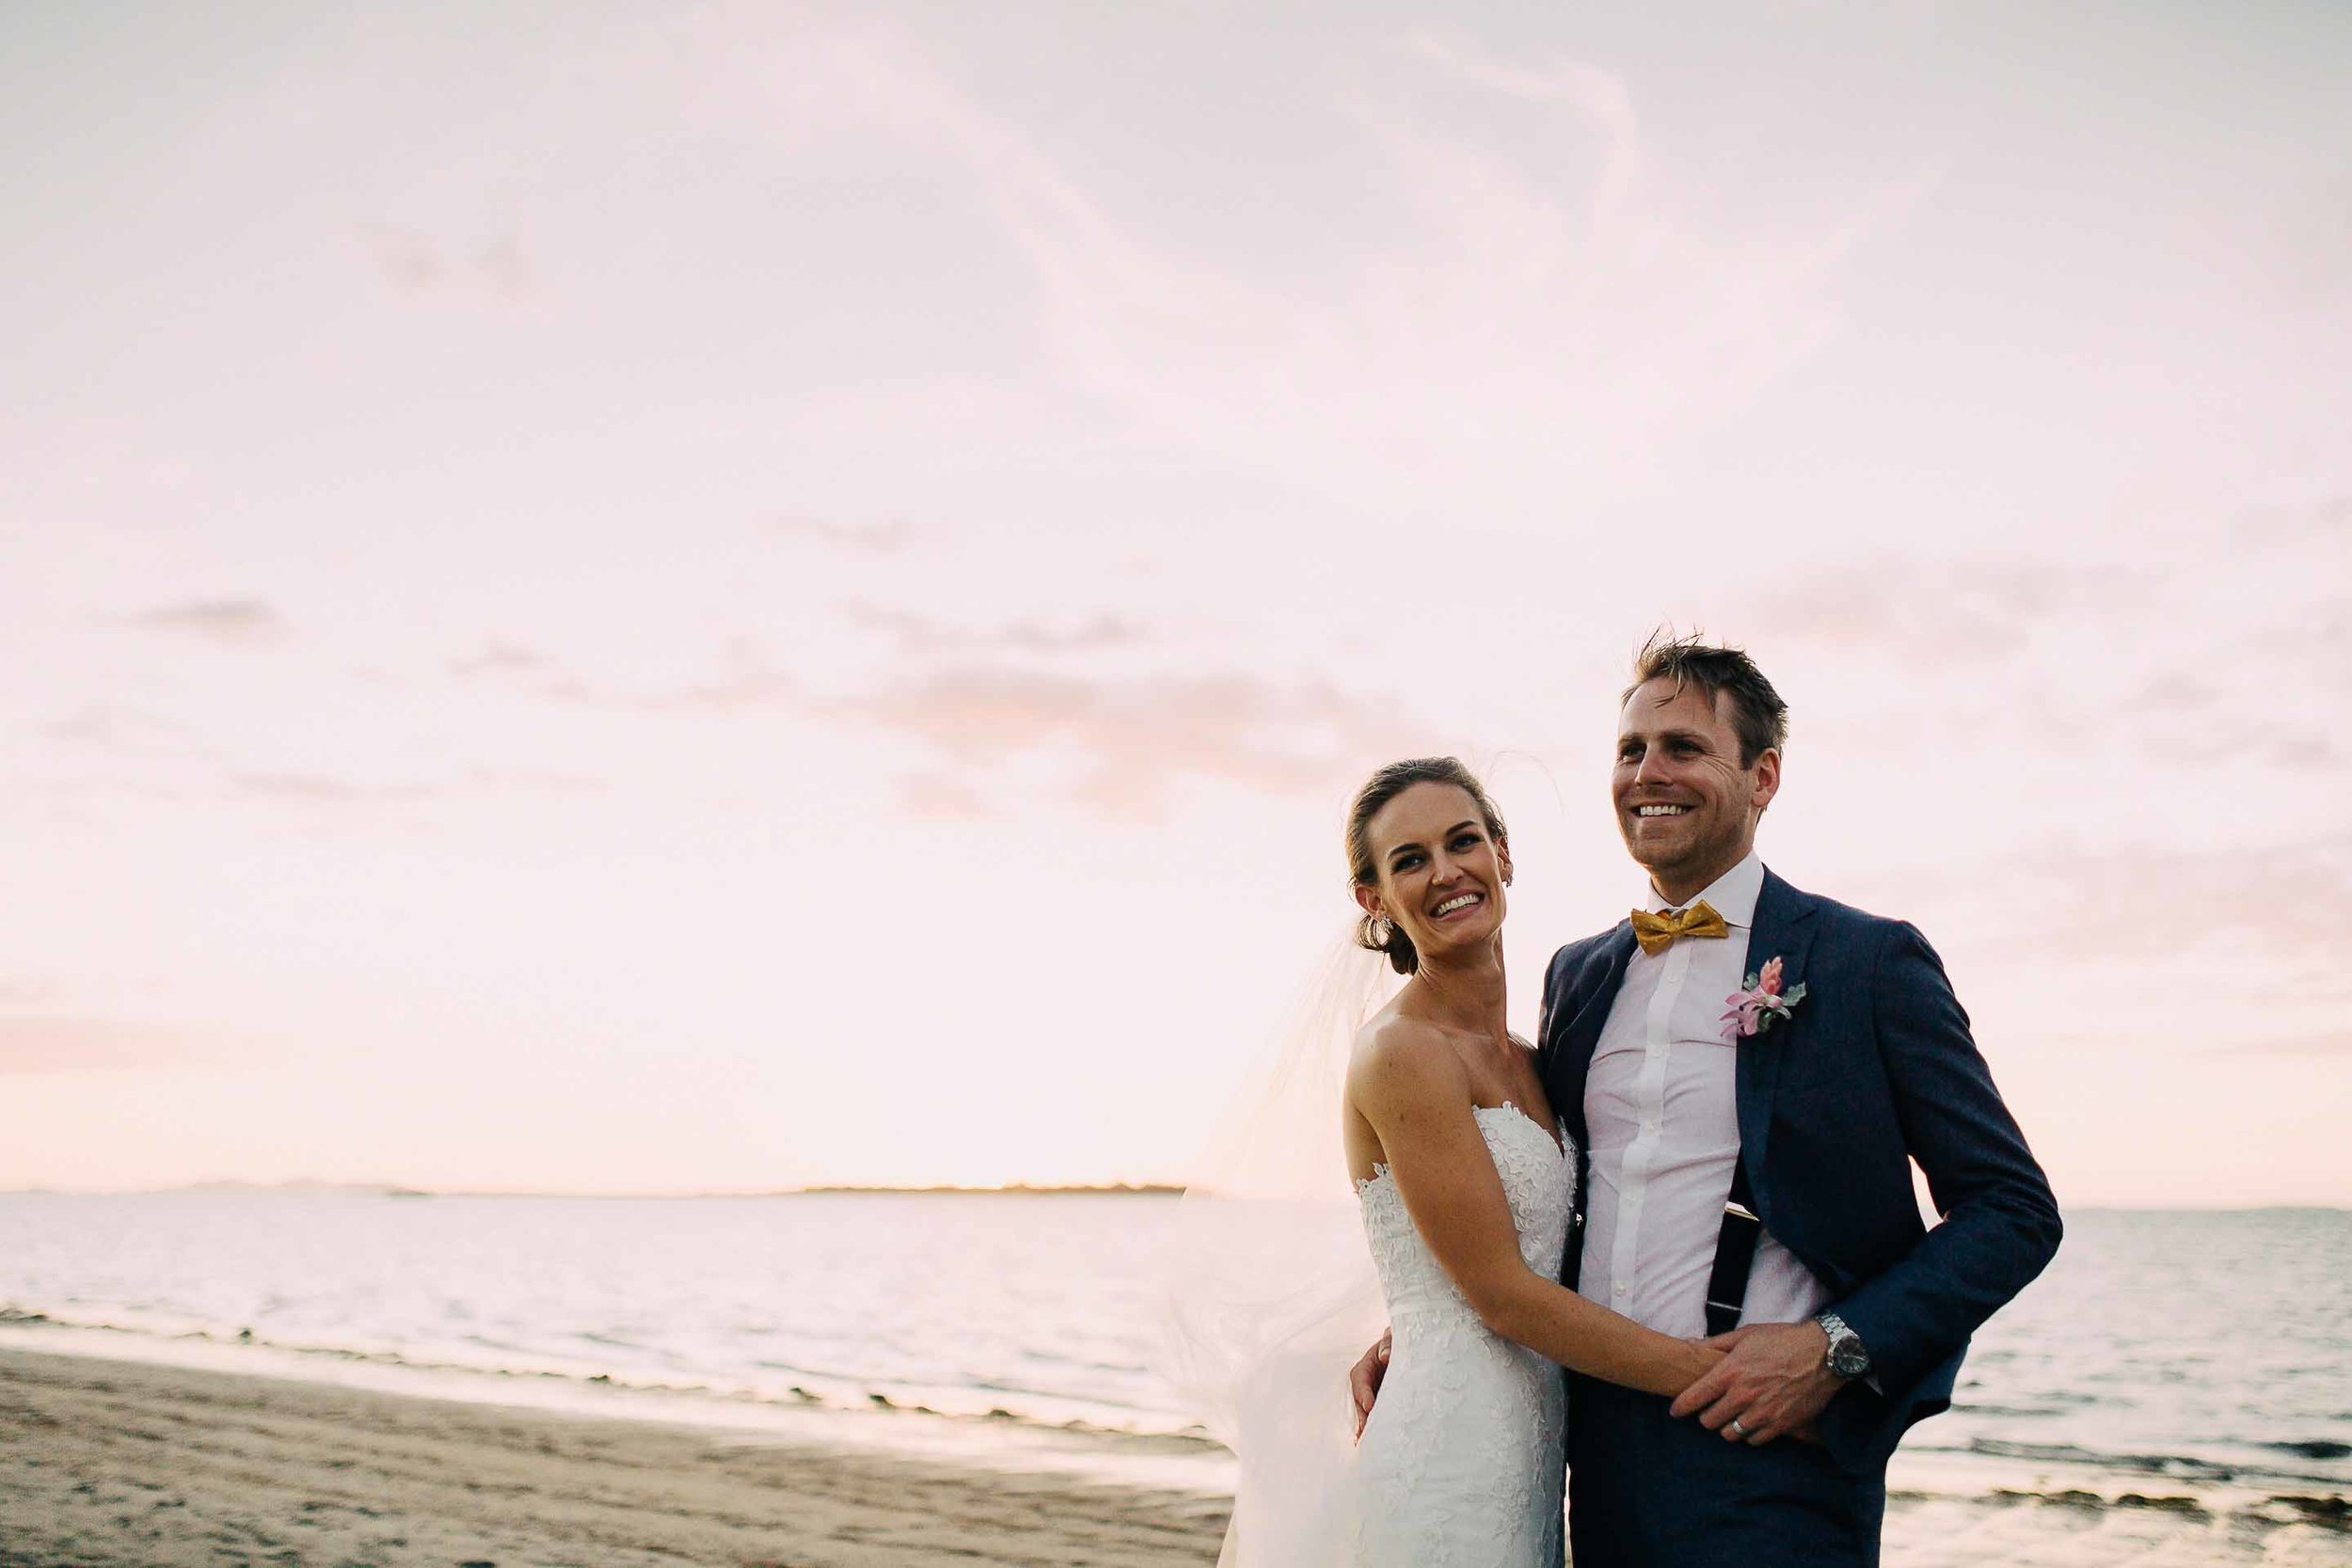 Bride and Groom smile on the beach at sunset.